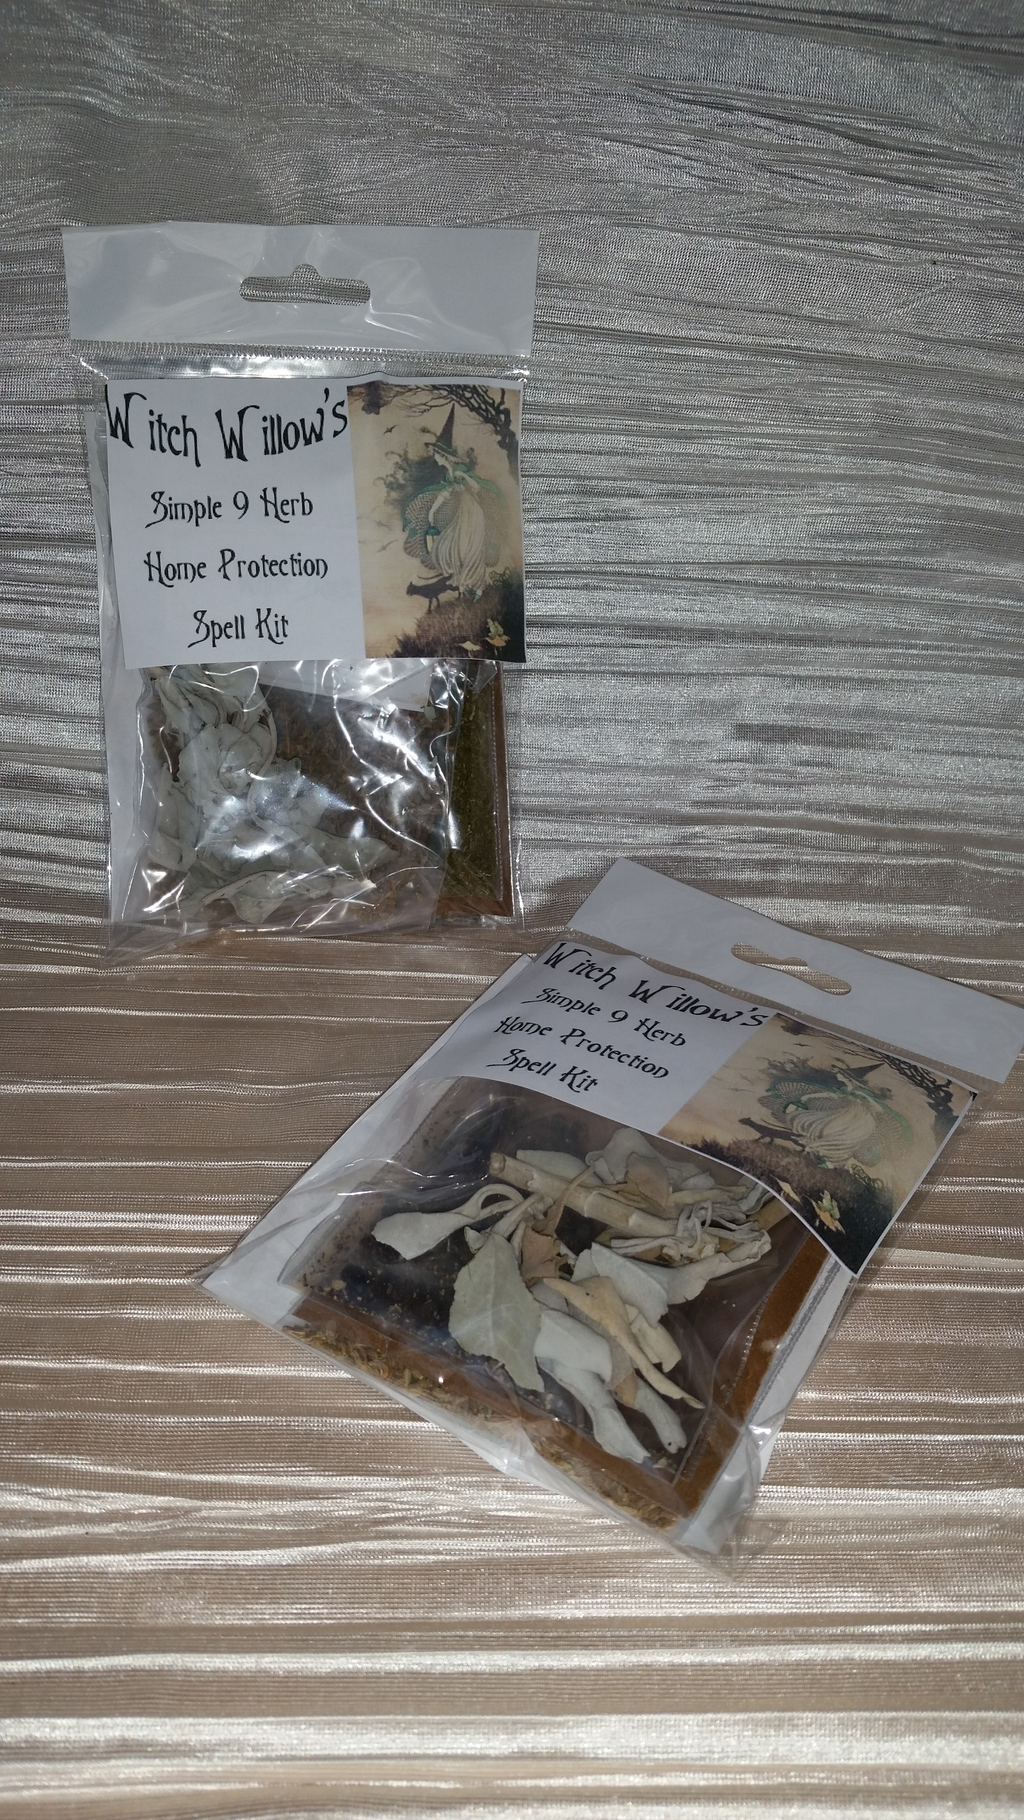 Simple 9 herb home protection spell kit